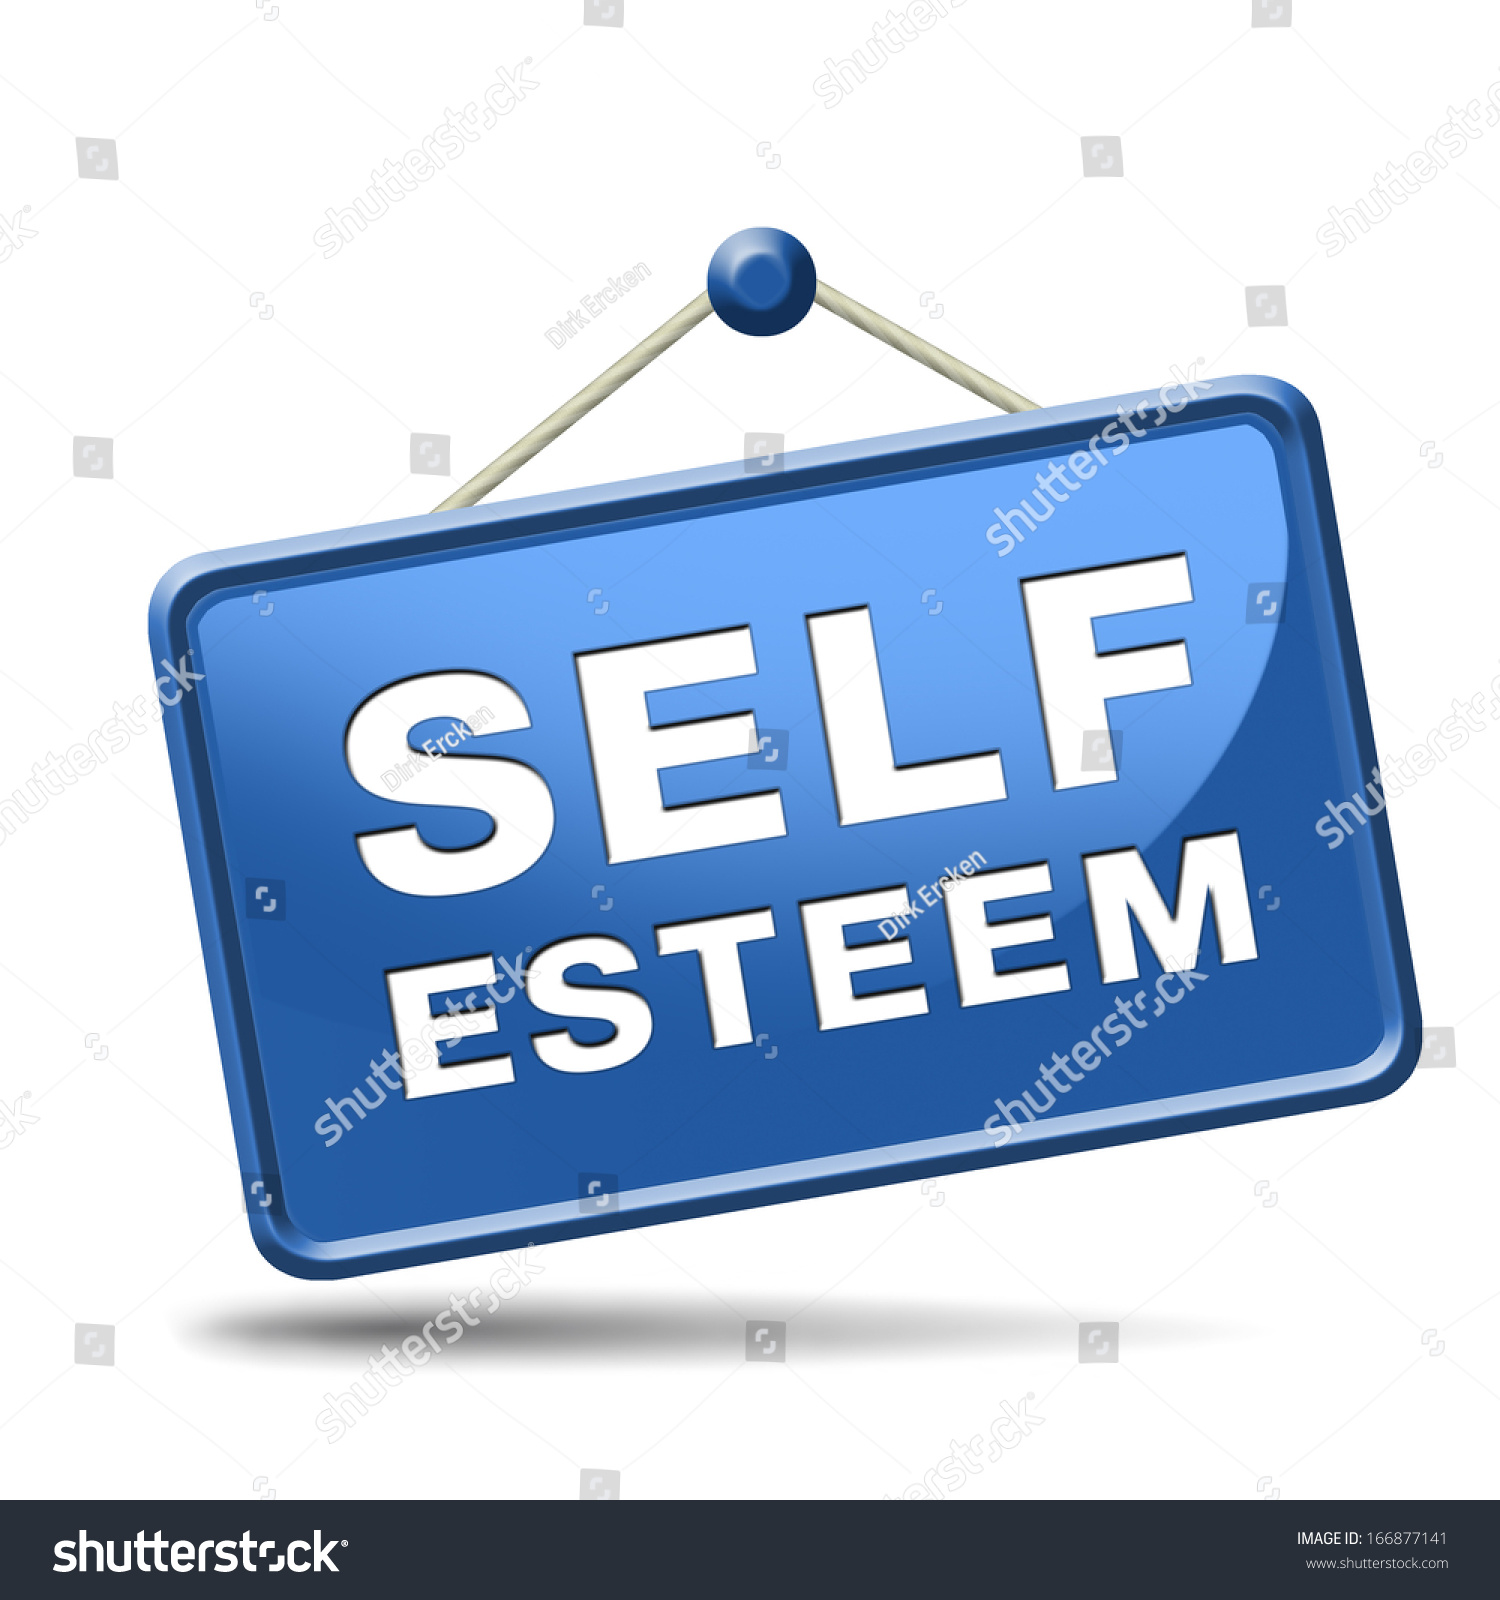 Self Esteem Regard Or Respect Confidence And Pride Psychology Stock Photo 166877141 : Shutterstock